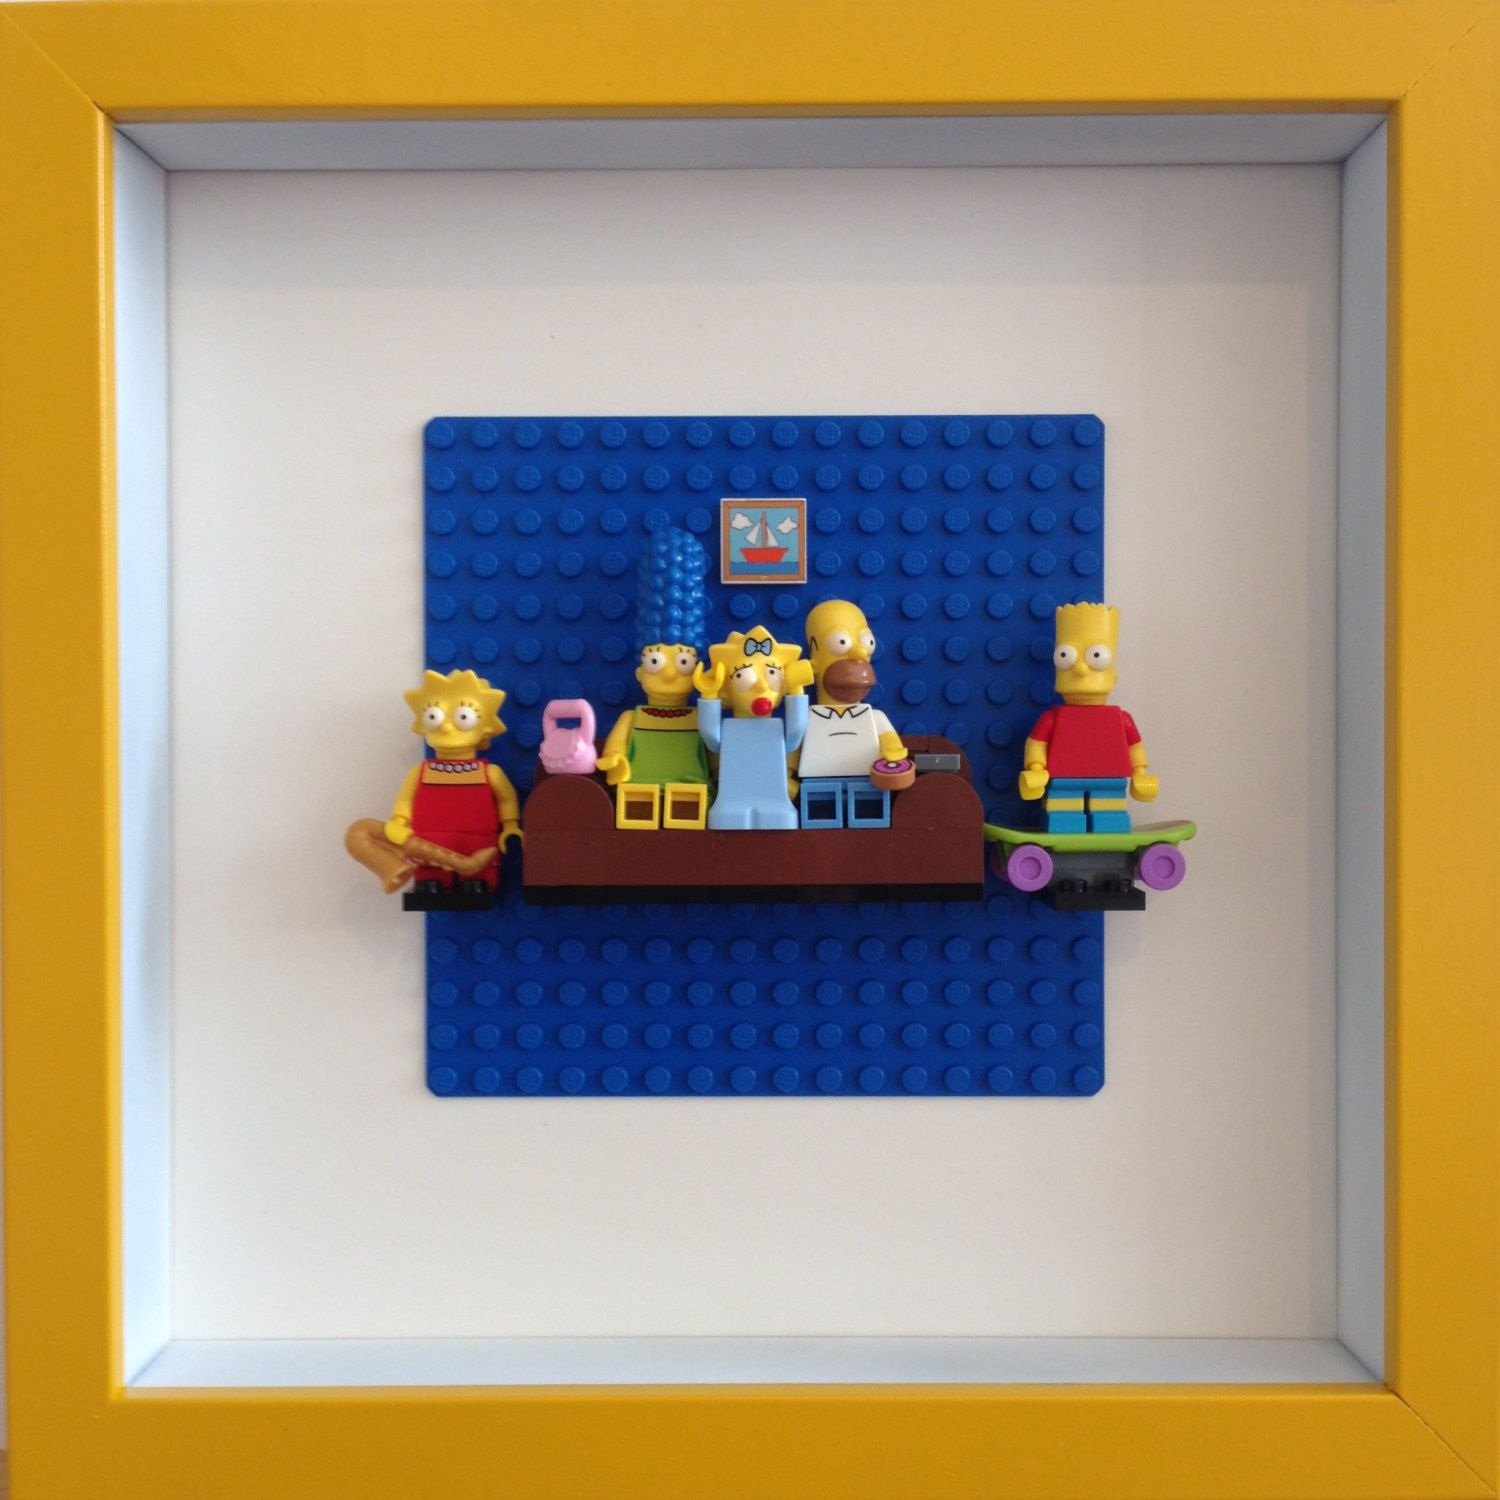 Genial Lego Simpsons Framed Wall Art Minifigures Easy To Recreate